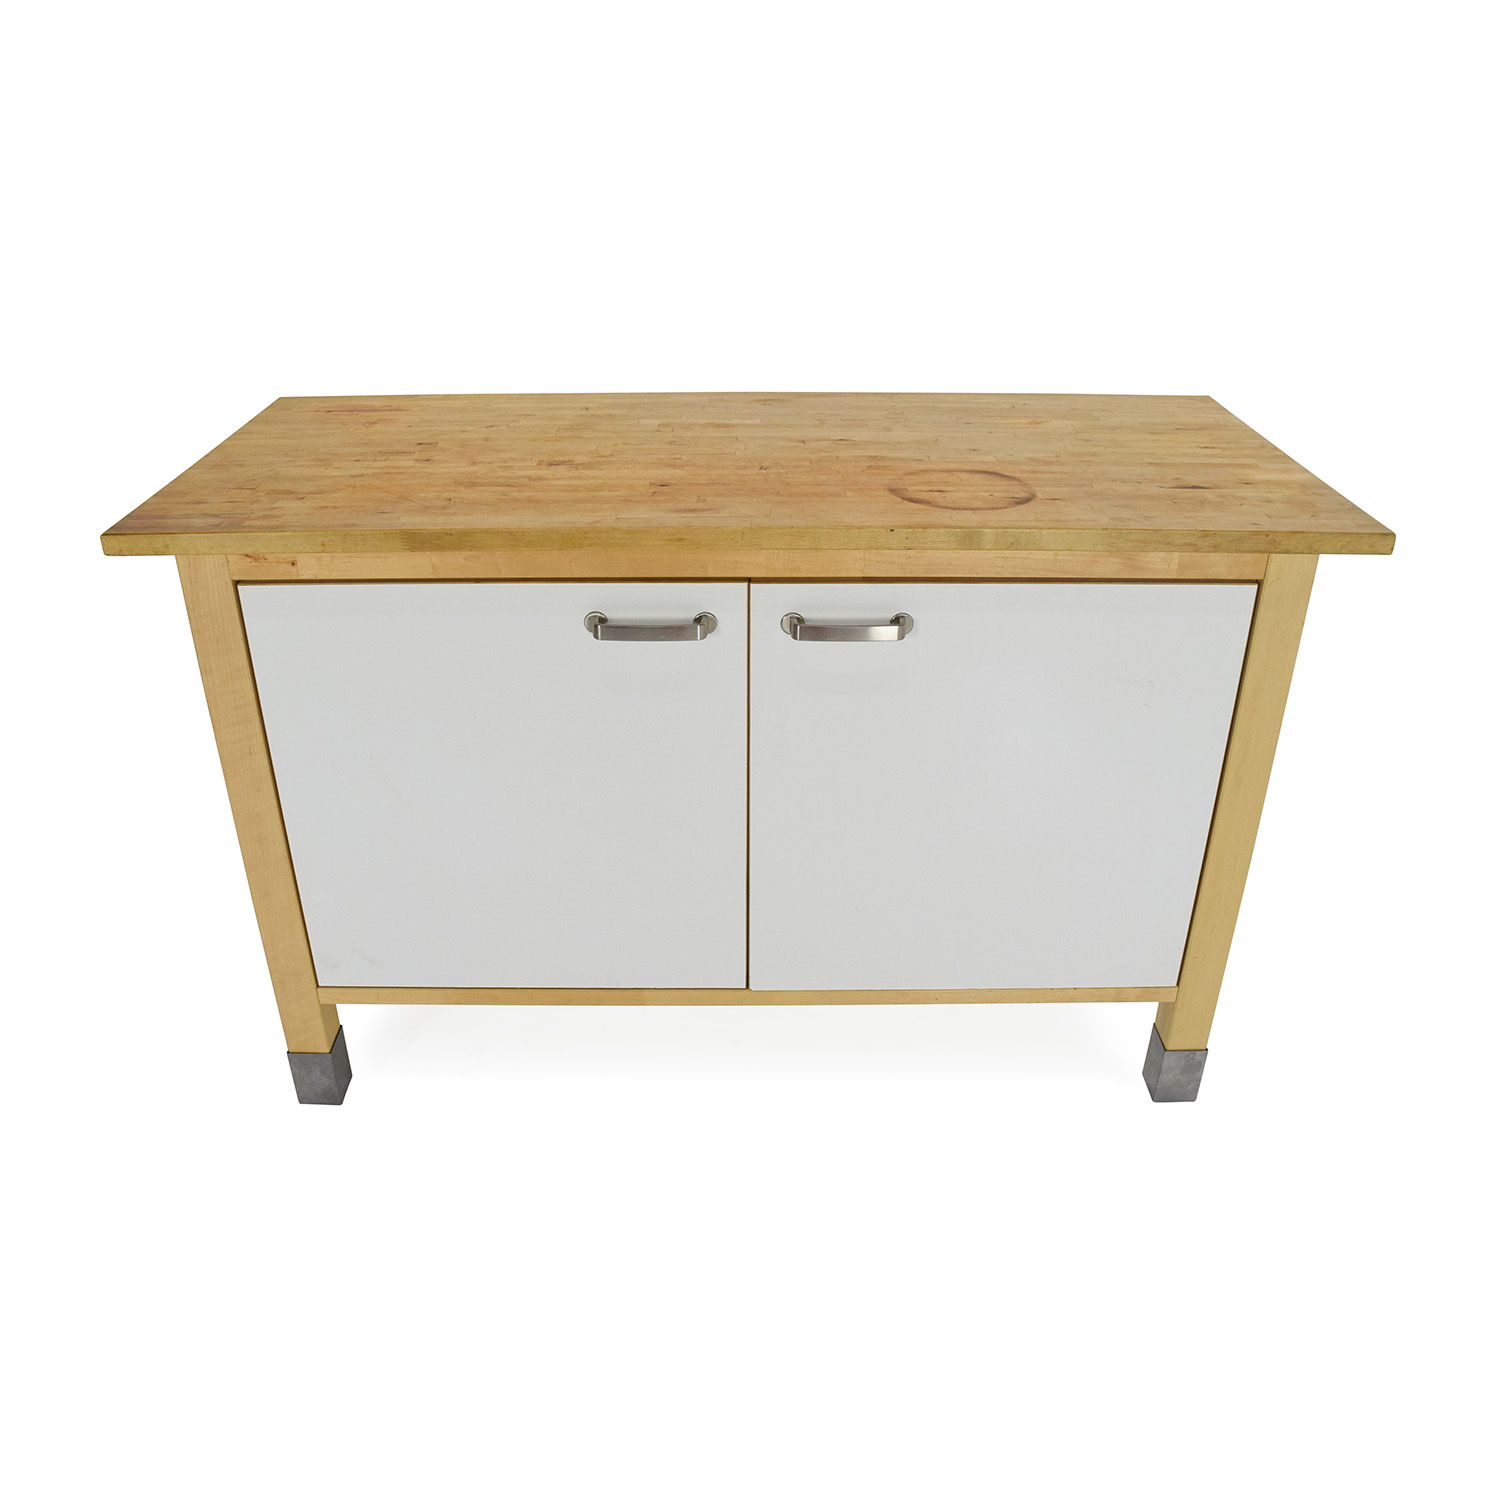 Kitchen Block Cabinet Table sale